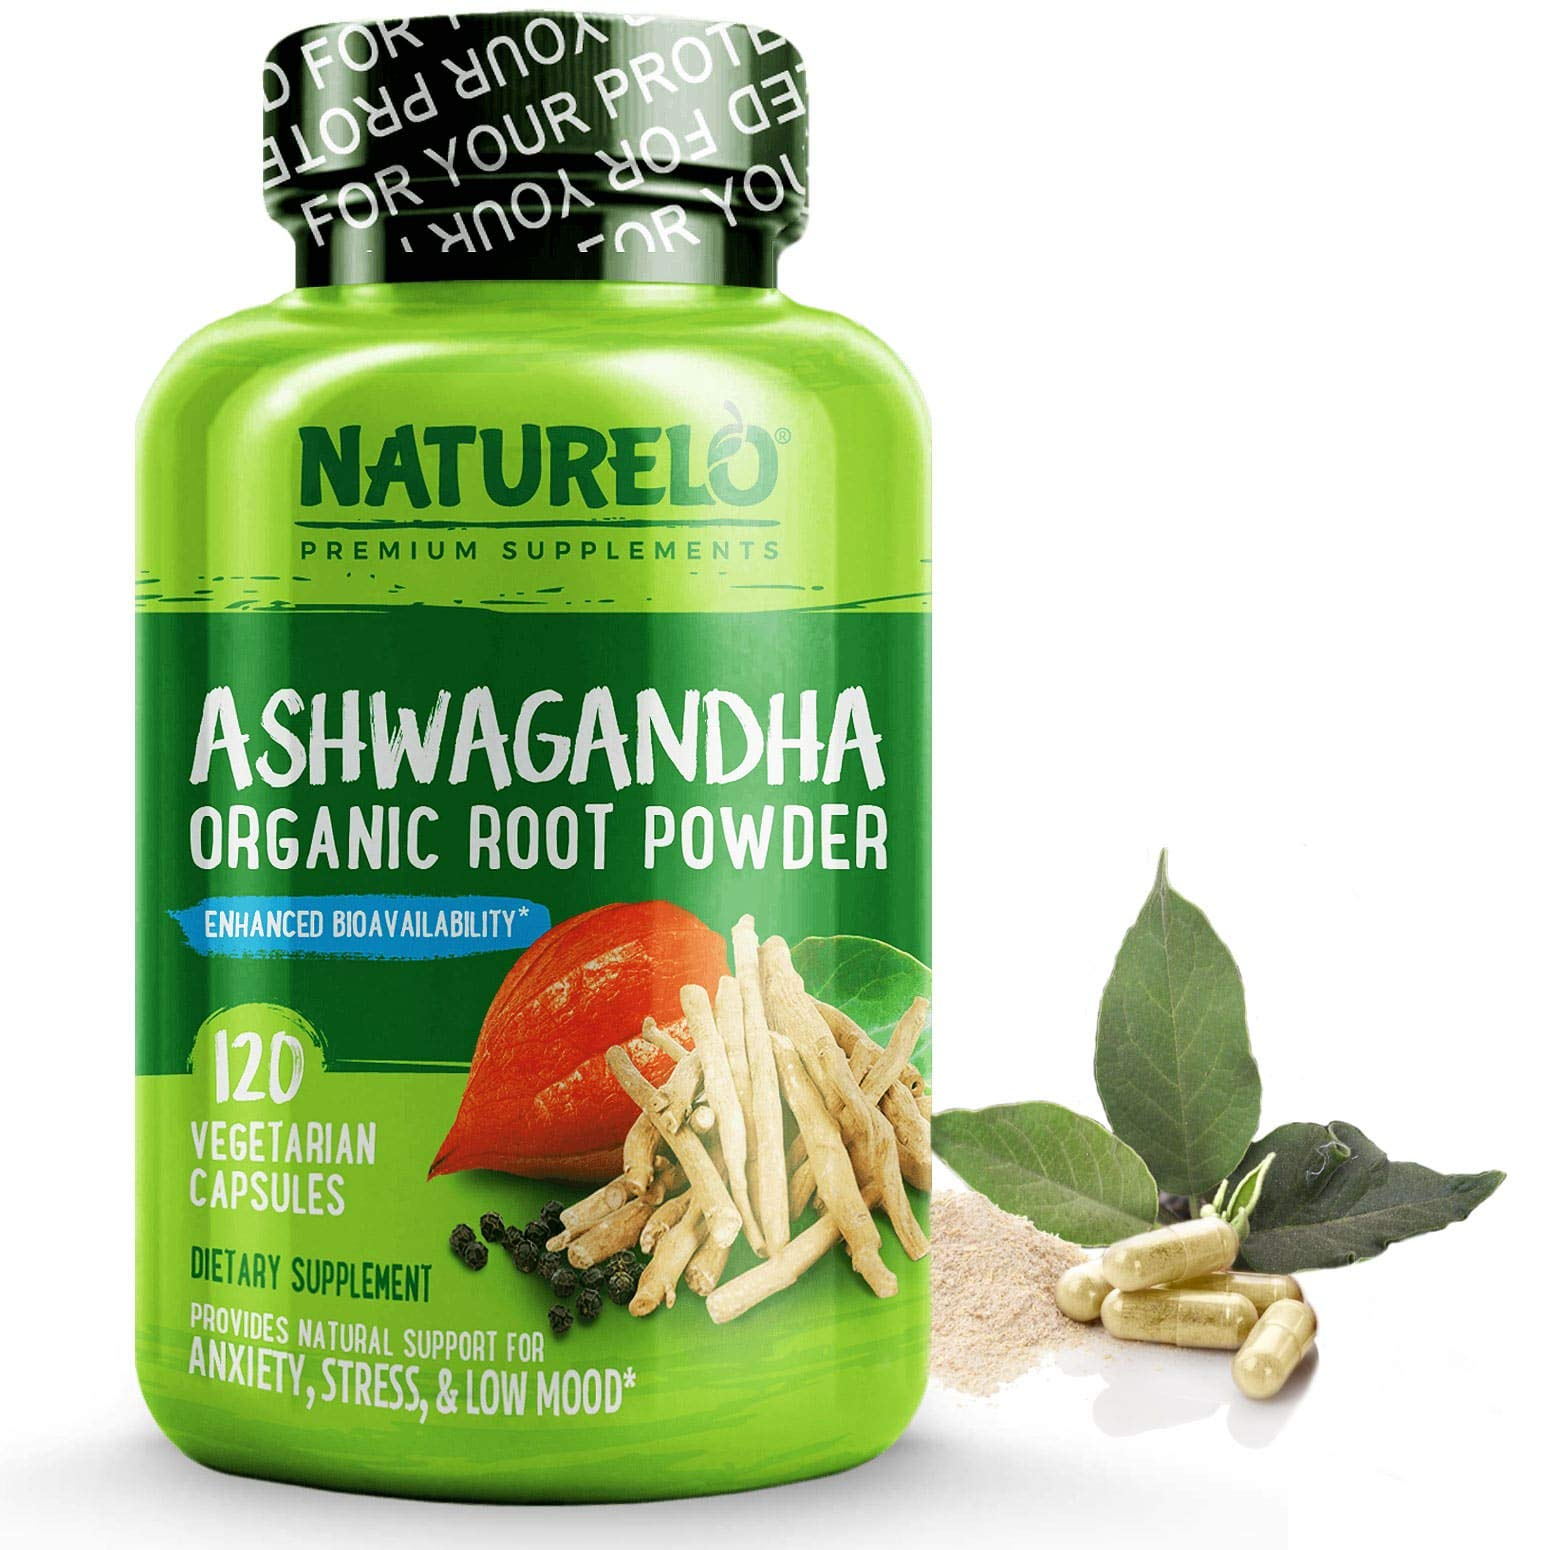 NATURELO Pure Ashwagandha Root Powder Extract - with Black Pepper for High Absorption - 120 Vegan Capsules (US)